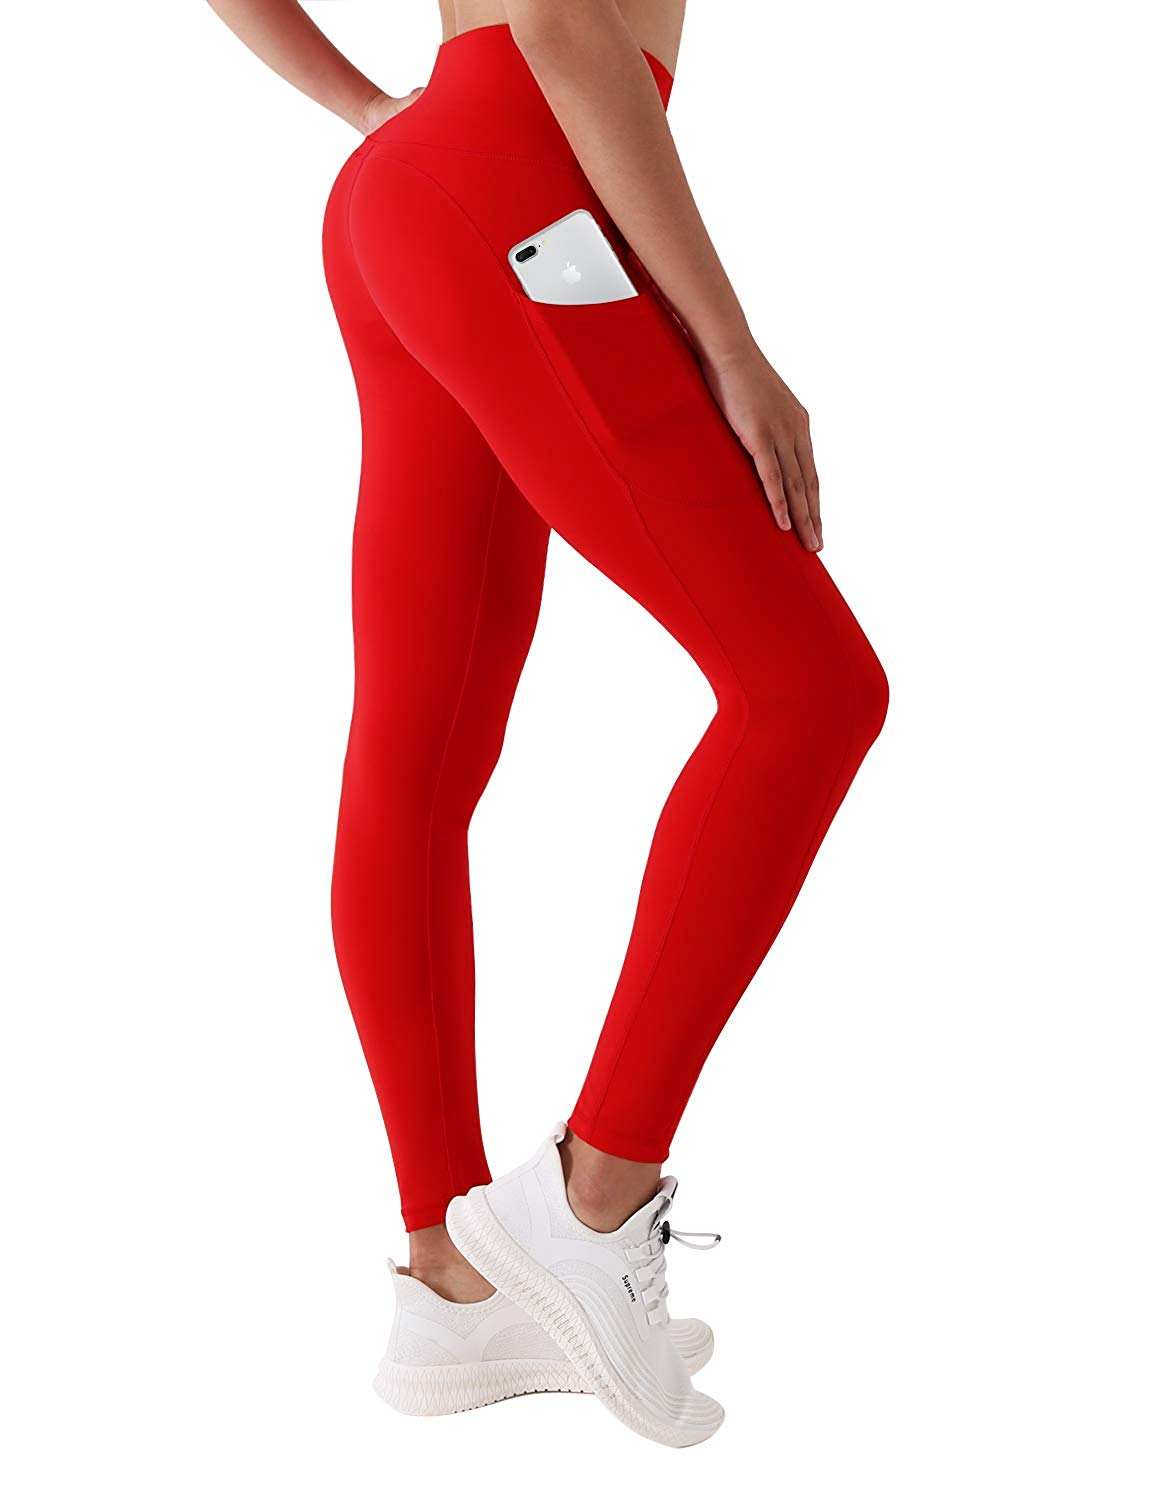 "**FREE** ""DIAMOND"" 